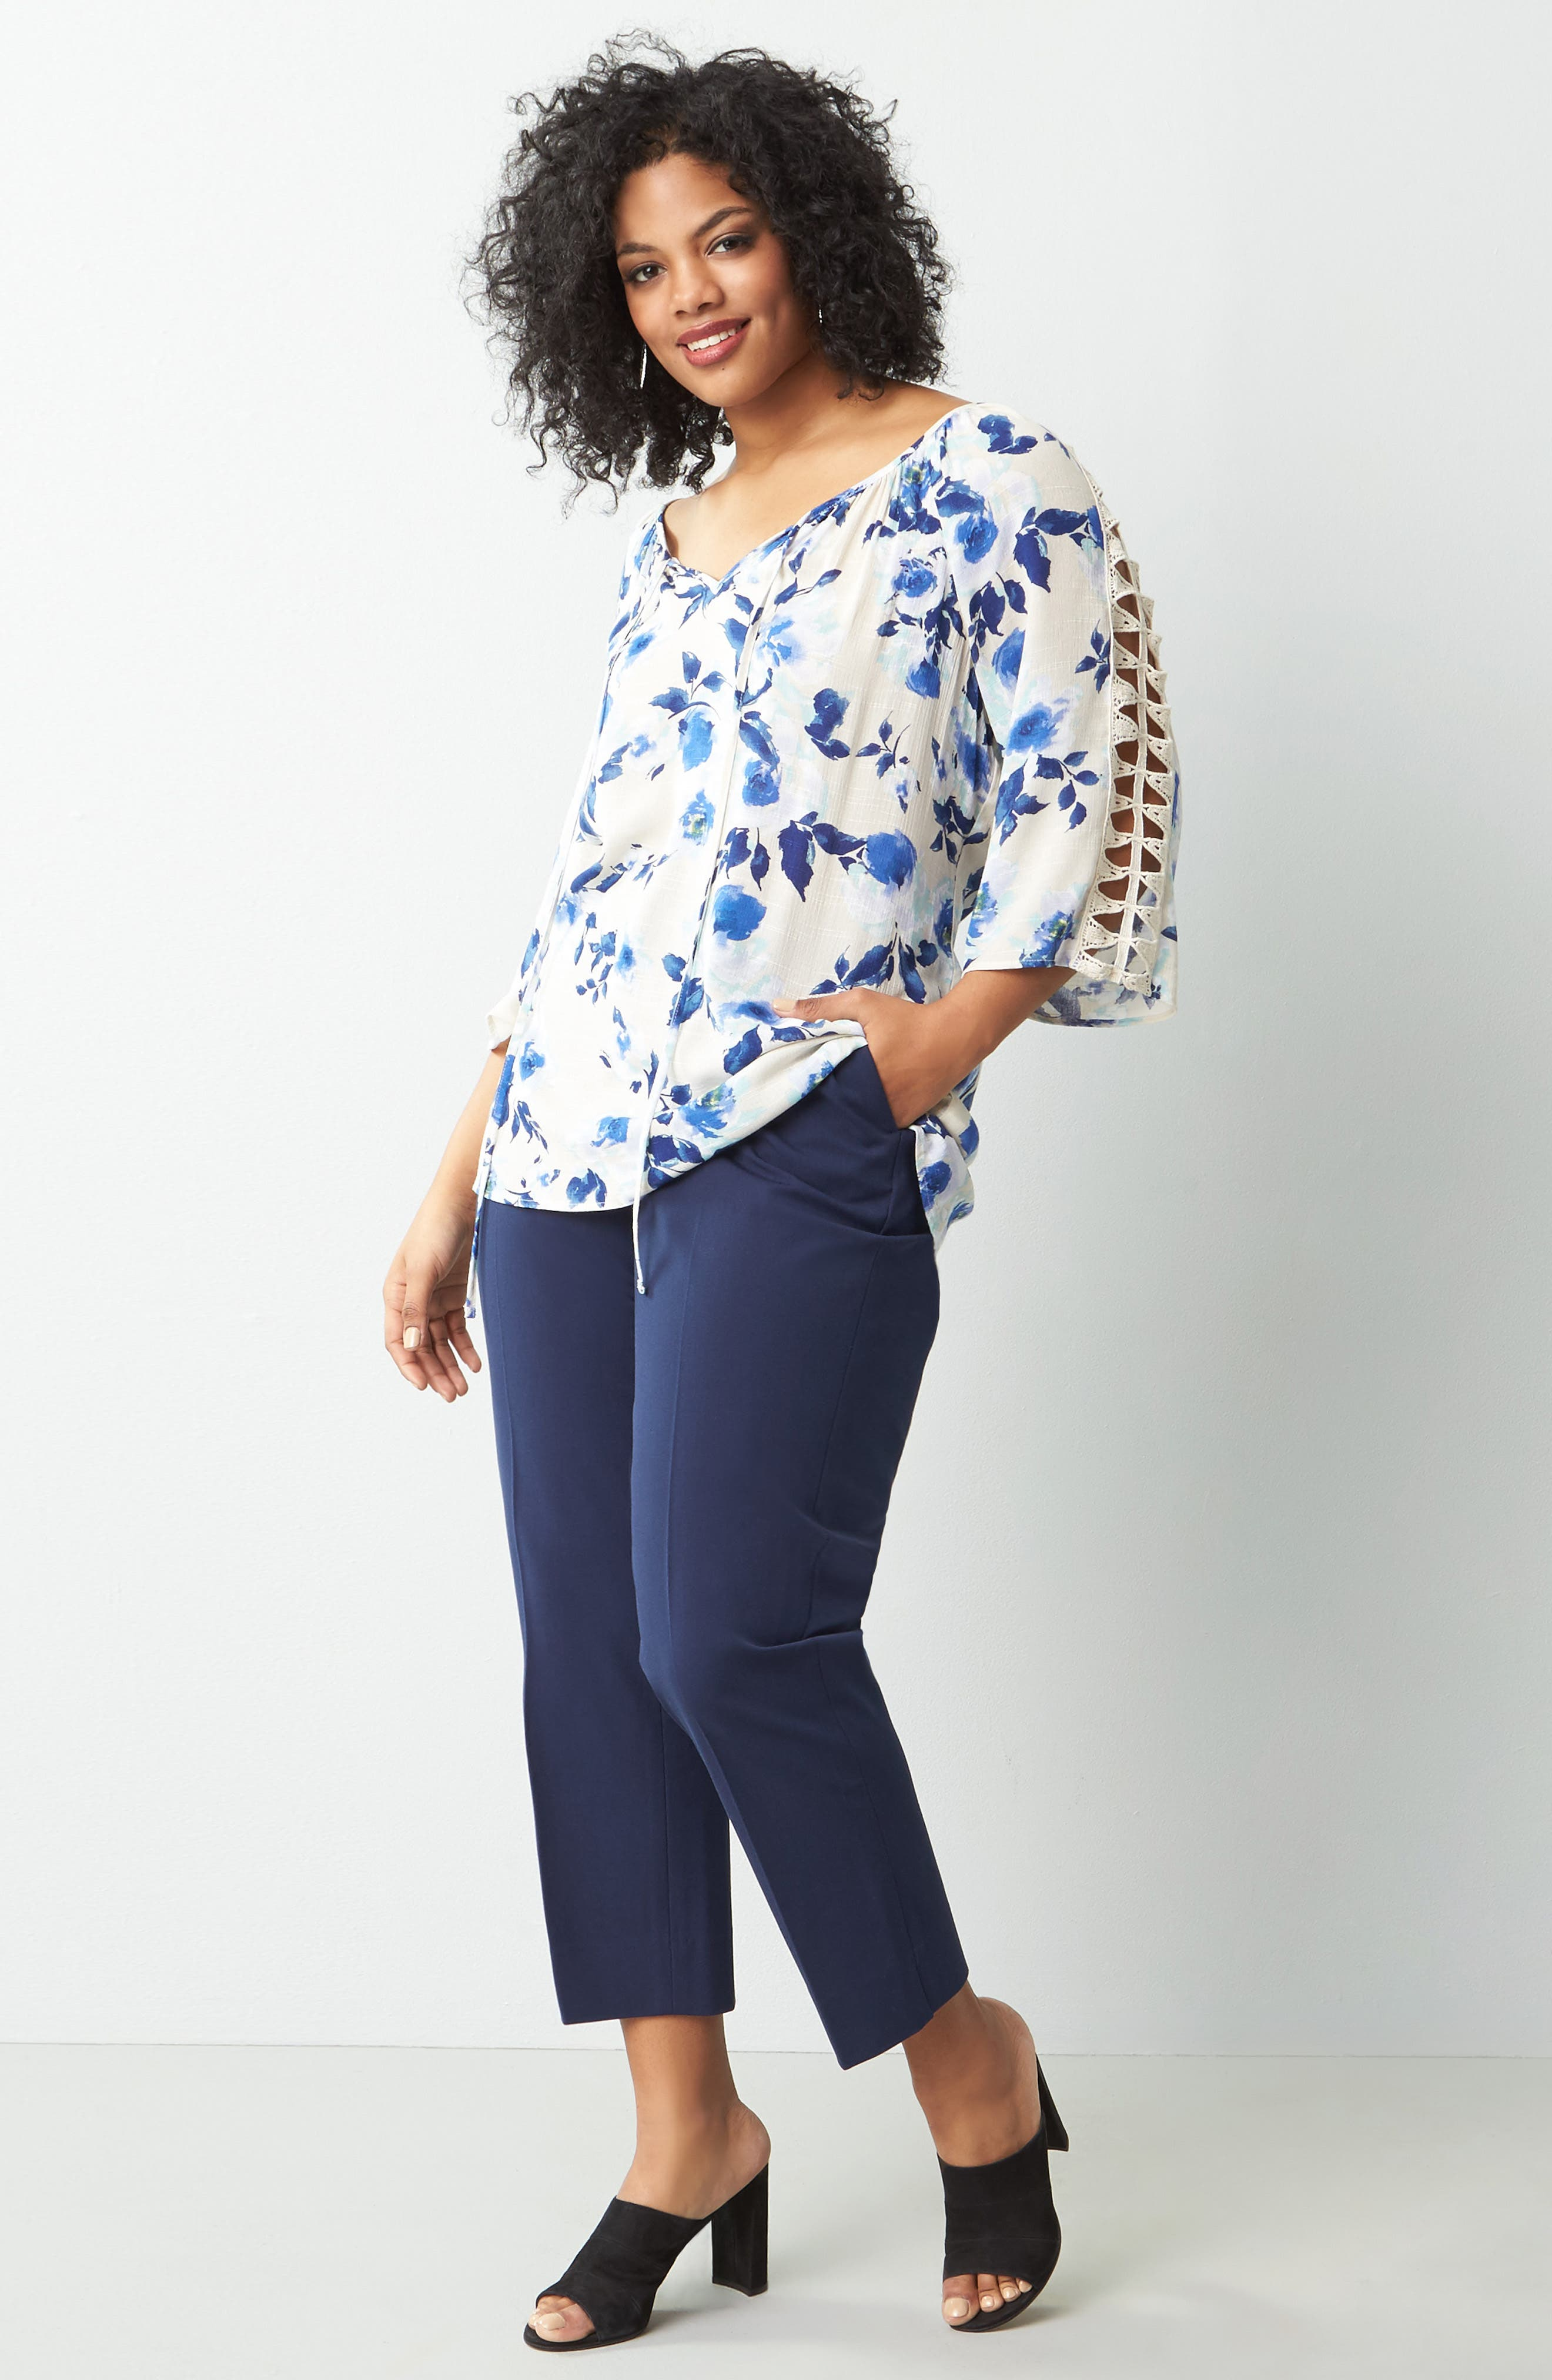 Bobeau Top & Sejour Pants Outfit with Accessories (Plus Size)